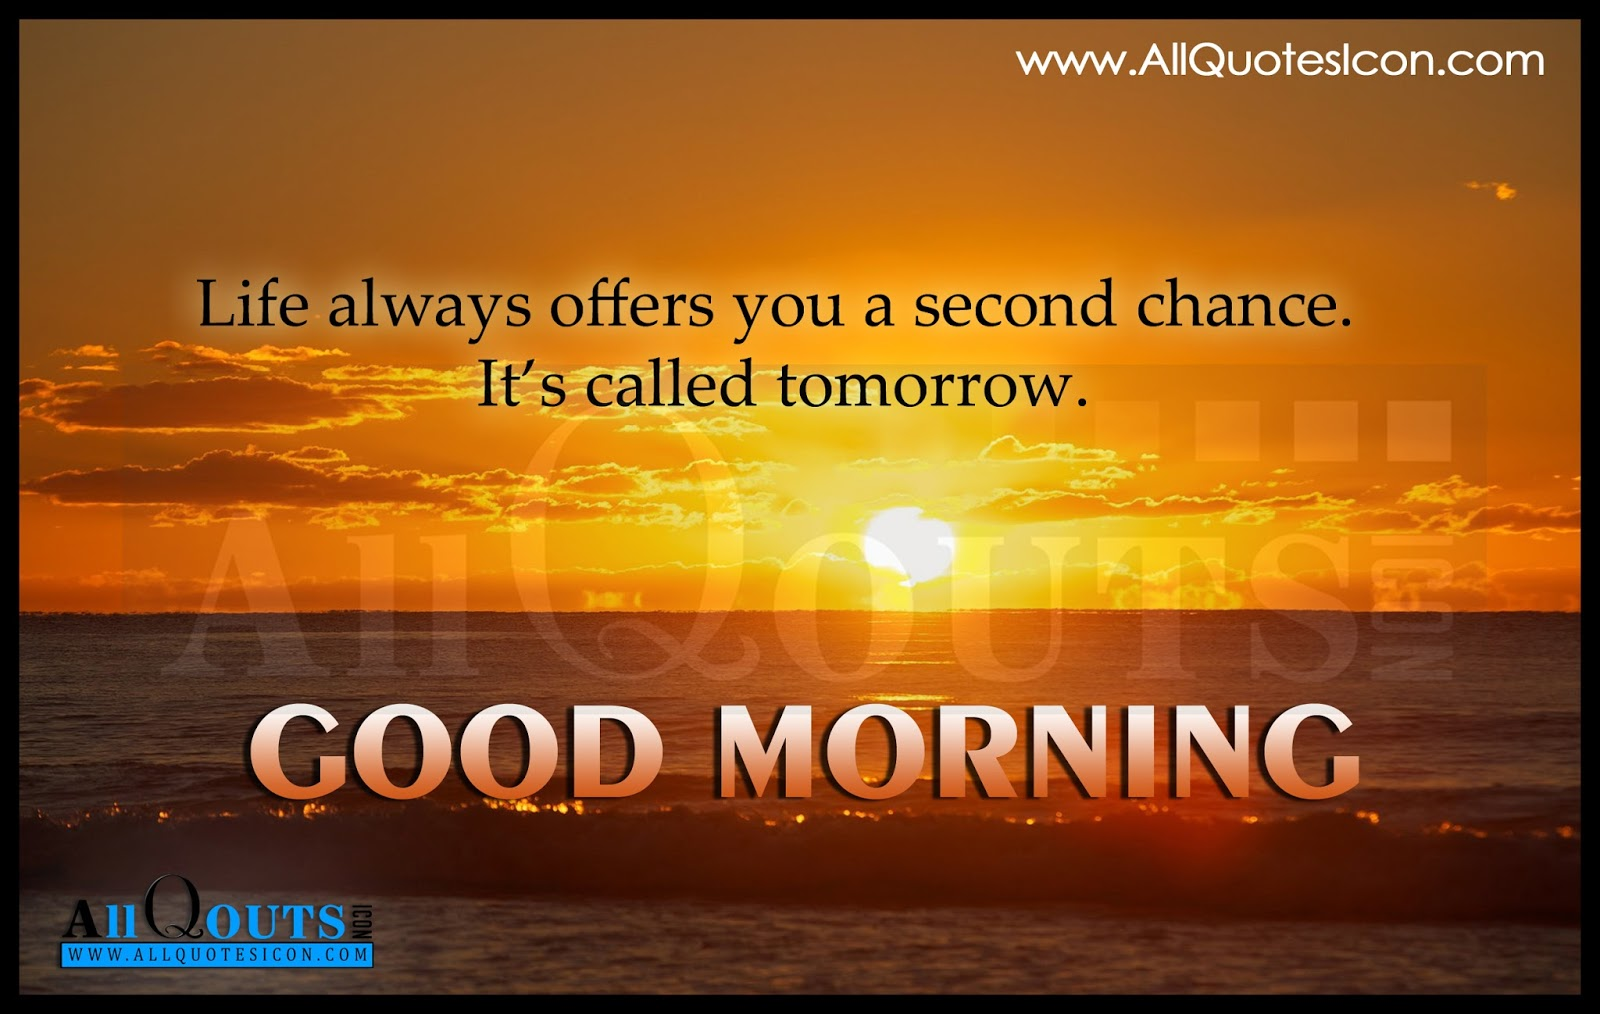 Good Morning Journey Quotes : Good morning quotes pictures images page